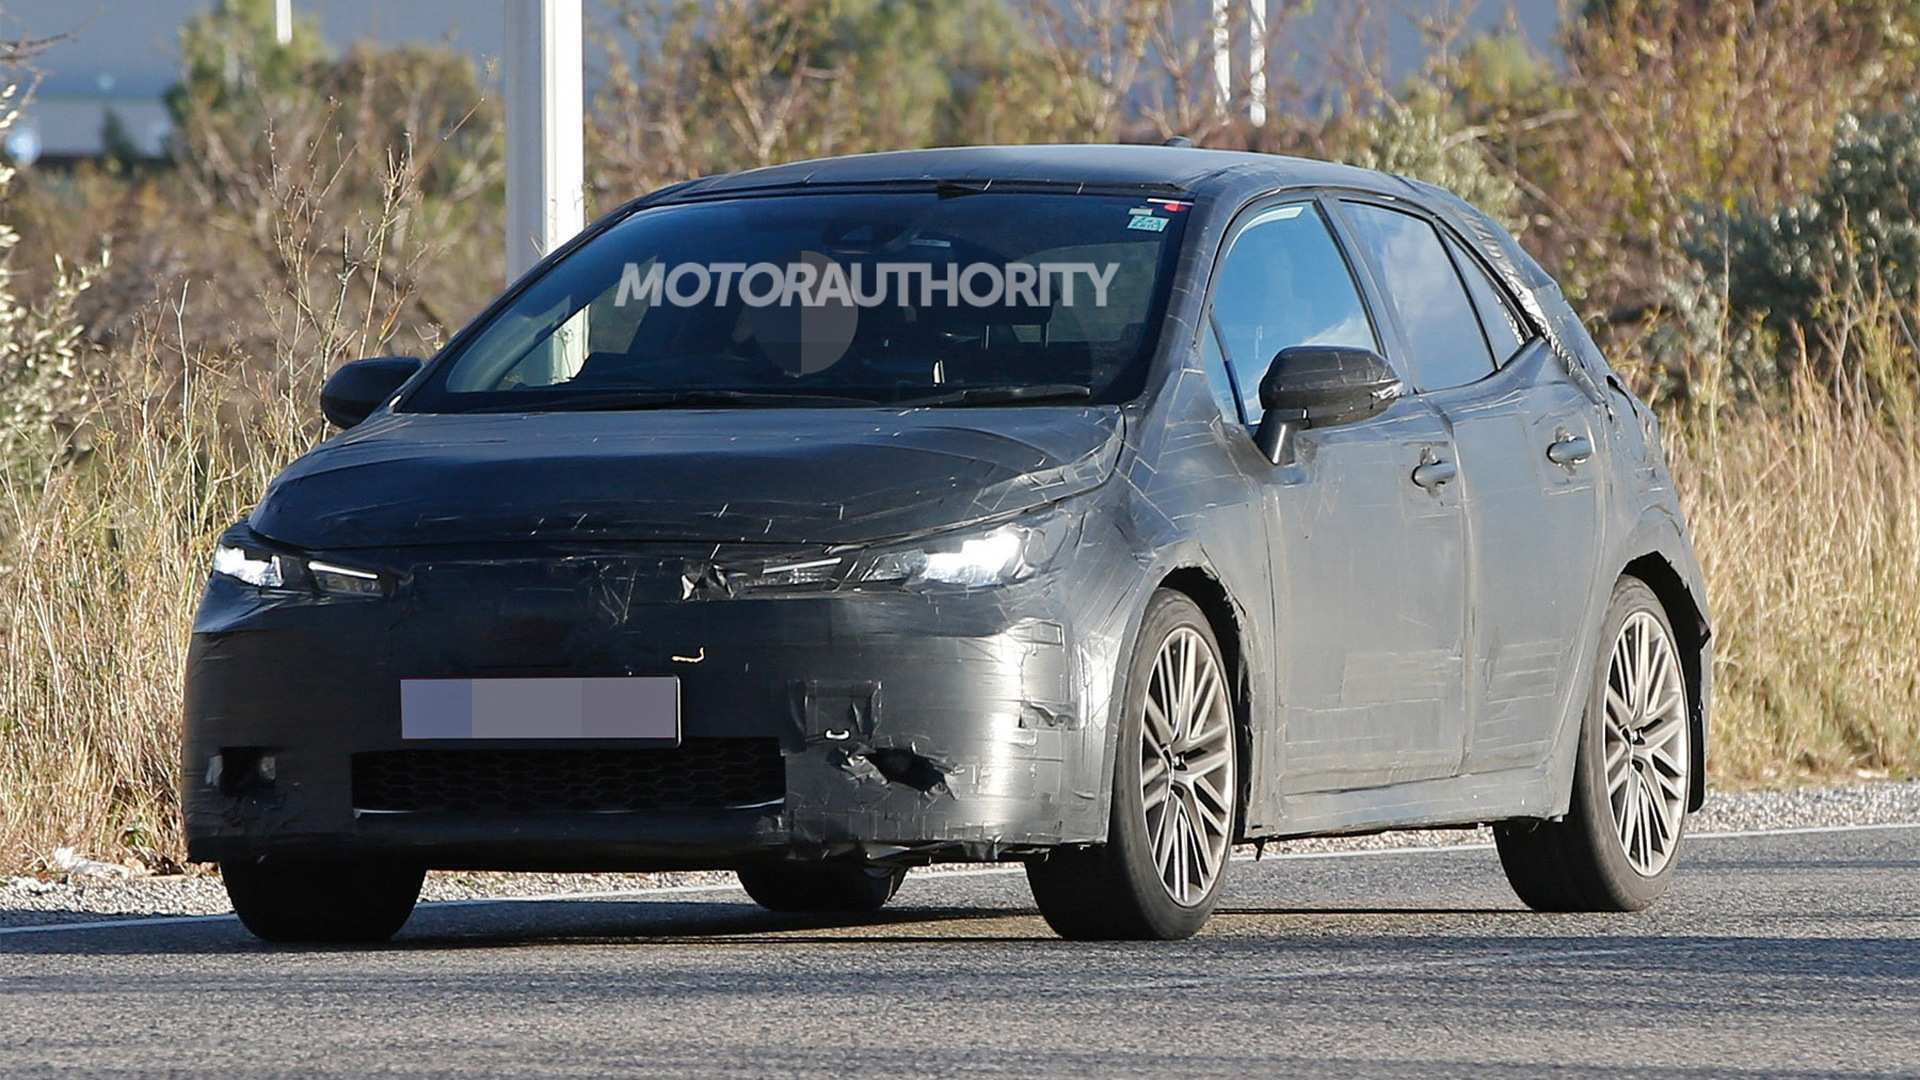 96 New 2020 New Toyota Avensis Spy Shots Release Date for 2020 New Toyota Avensis Spy Shots